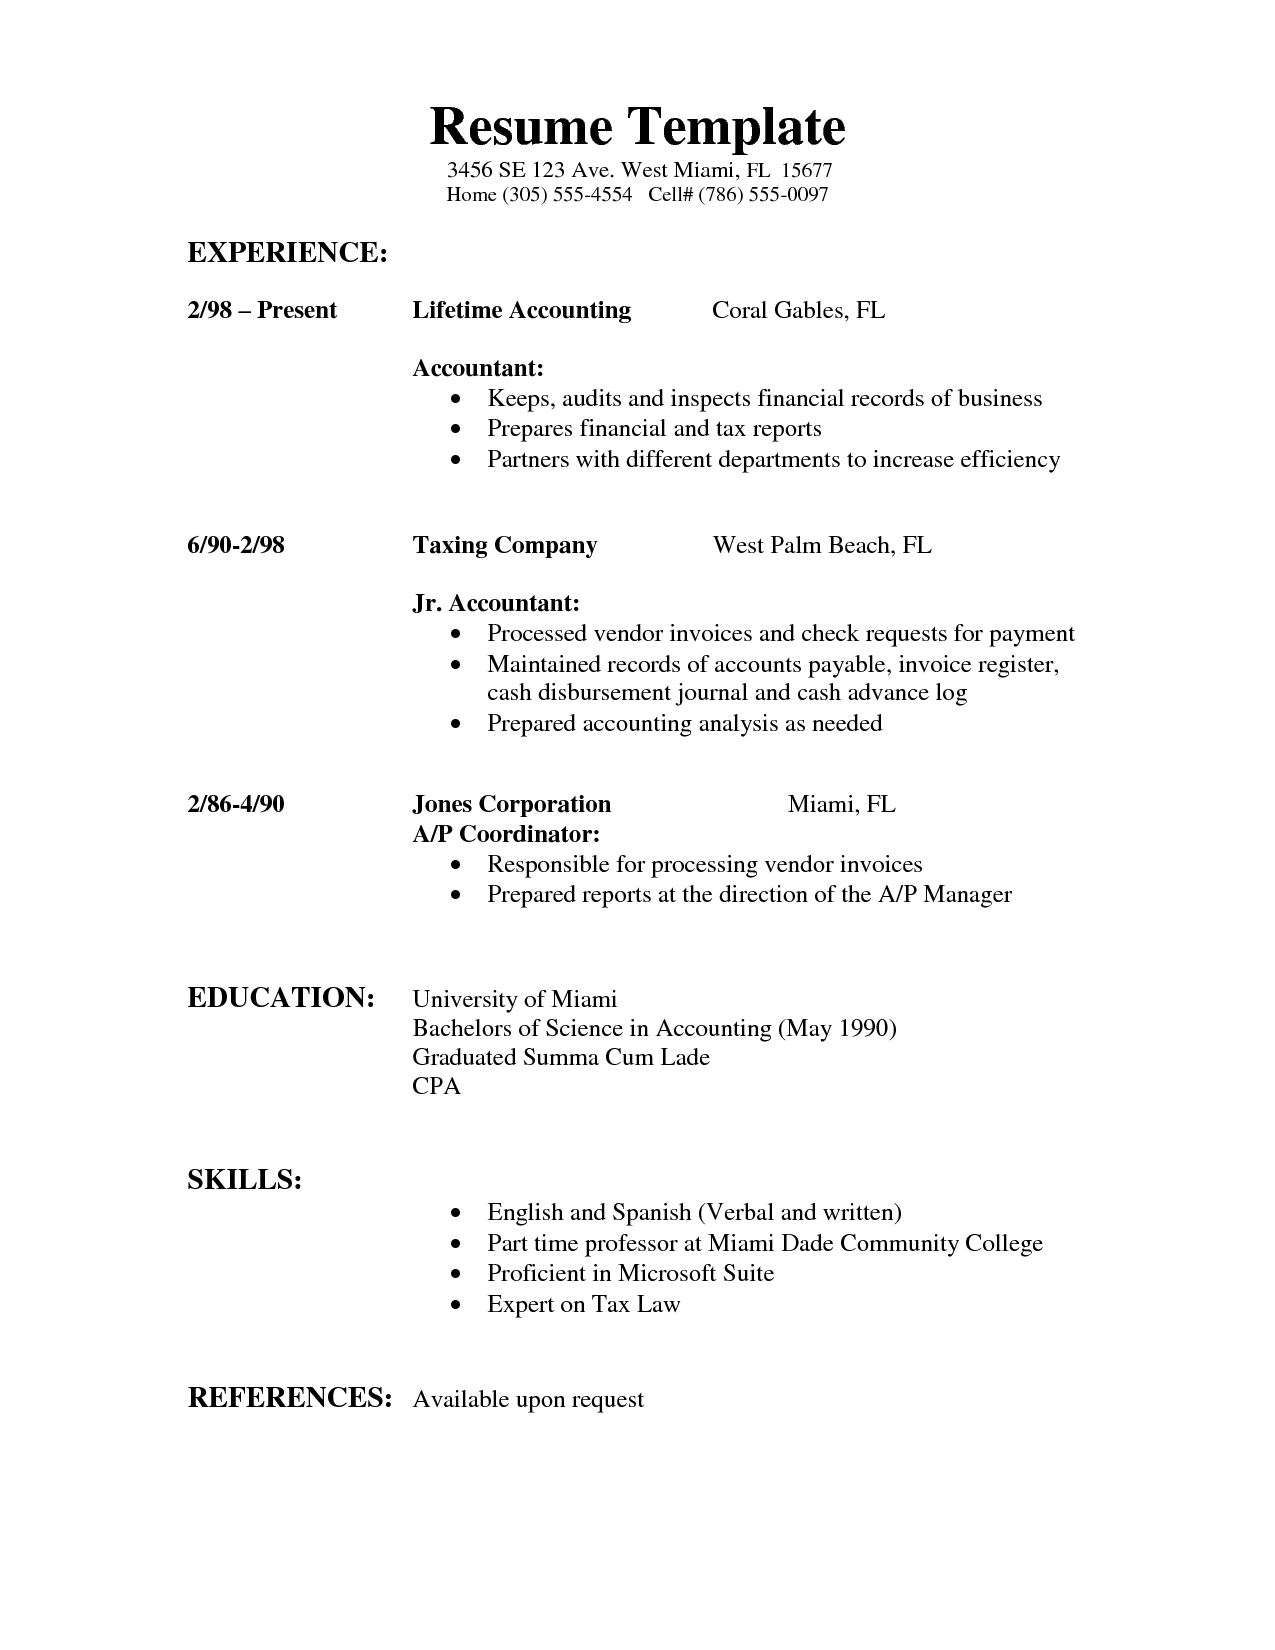 Examples Of Simple Resumes Template